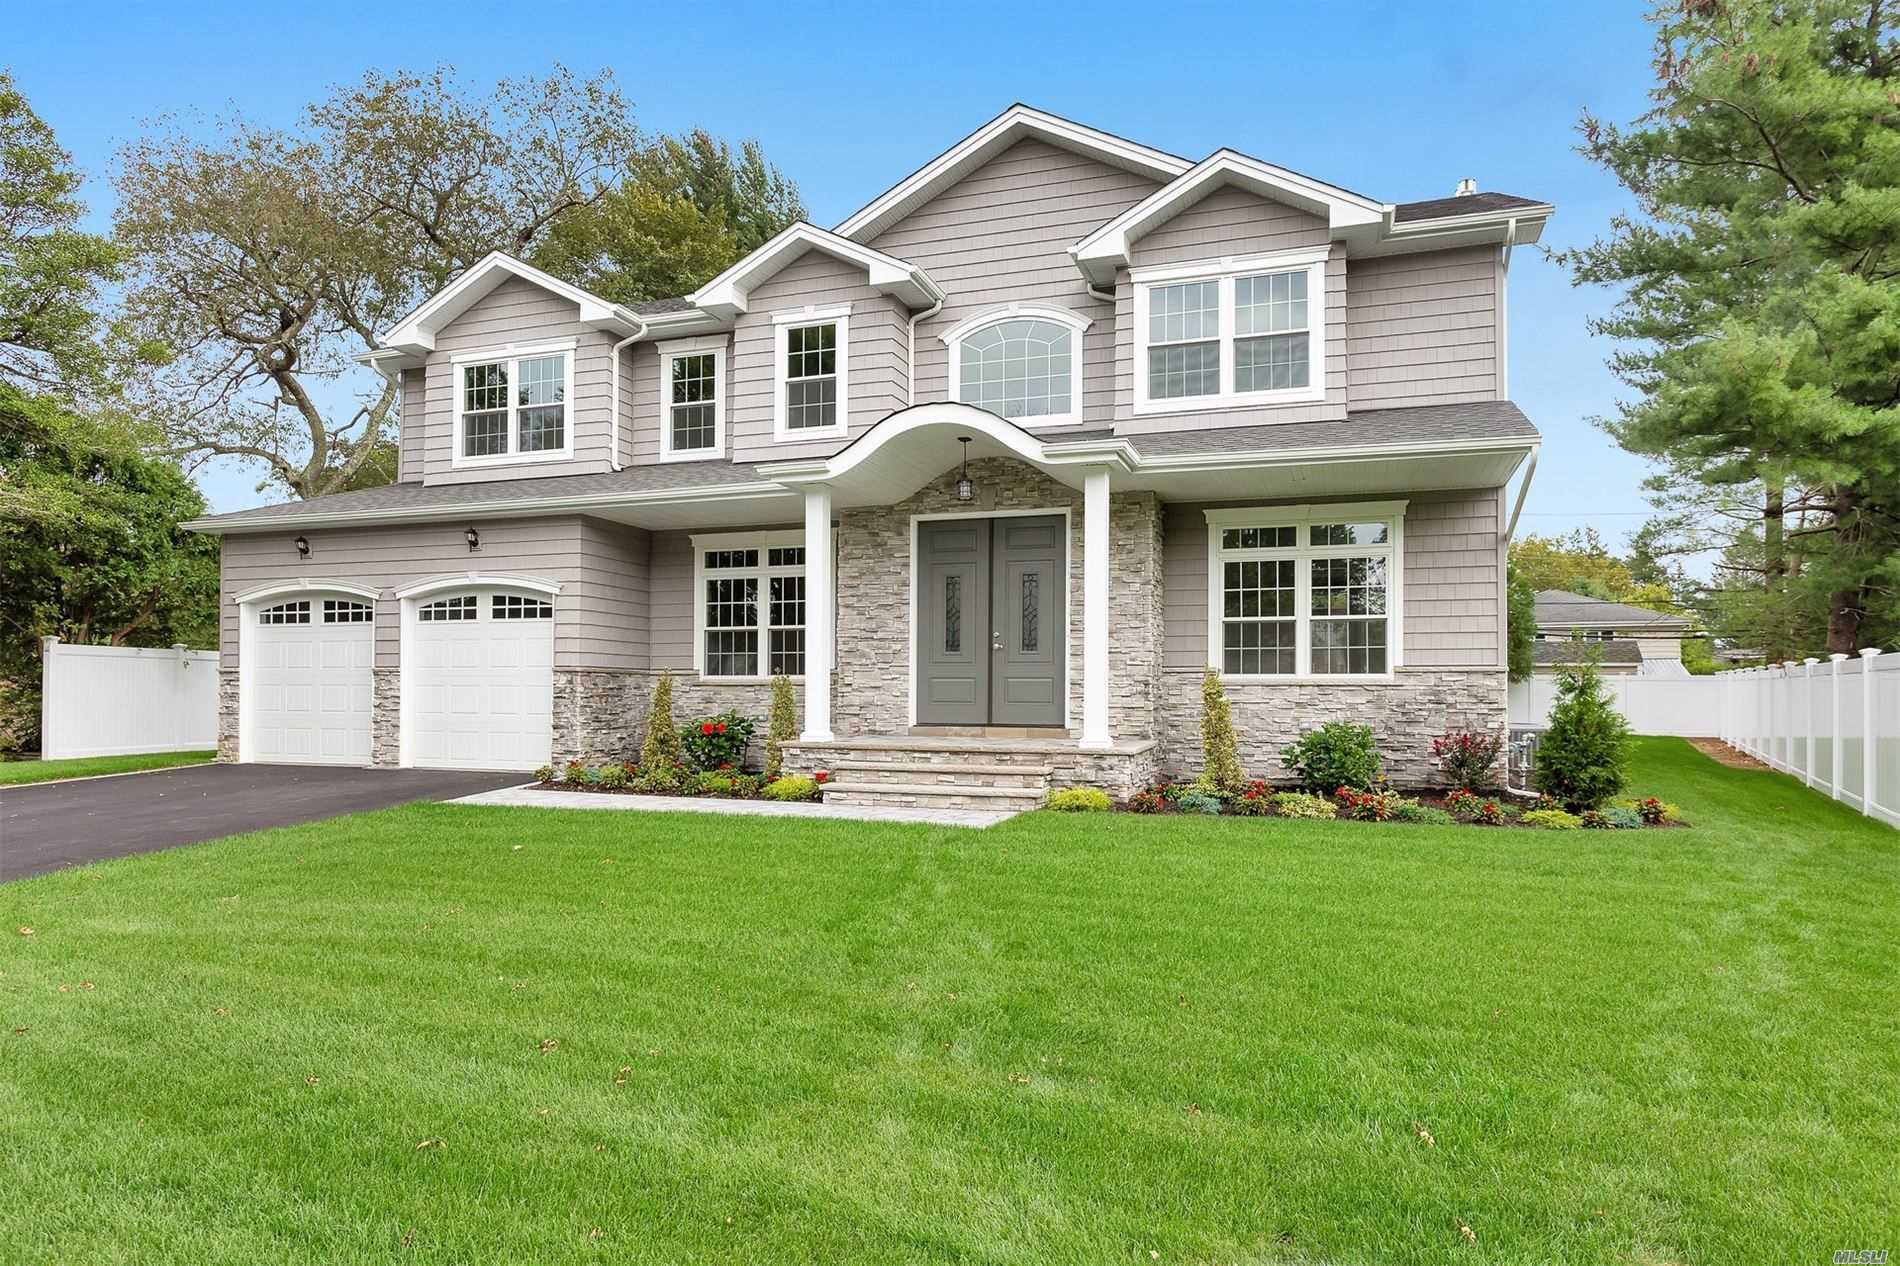 Prime North Syosset! 3800 Sq Ft. Home Featuring Grand 2 Story Entrance, Hardwood Floors Throughout,  5 Bedrooms, 4.5 Bathrooms, , Sun-Filled Master Br W/Tray Ceiling- His + Hers Wic, Designer Kitchen W Center Island And Ss Appliances, Walk In Pantry, 1 Bedroom On Main Level W/ Full Bath- Den W/ Gas Fire Place - Full Basement W/ Ose. Fenced Back Yard . Process Of Being Built.